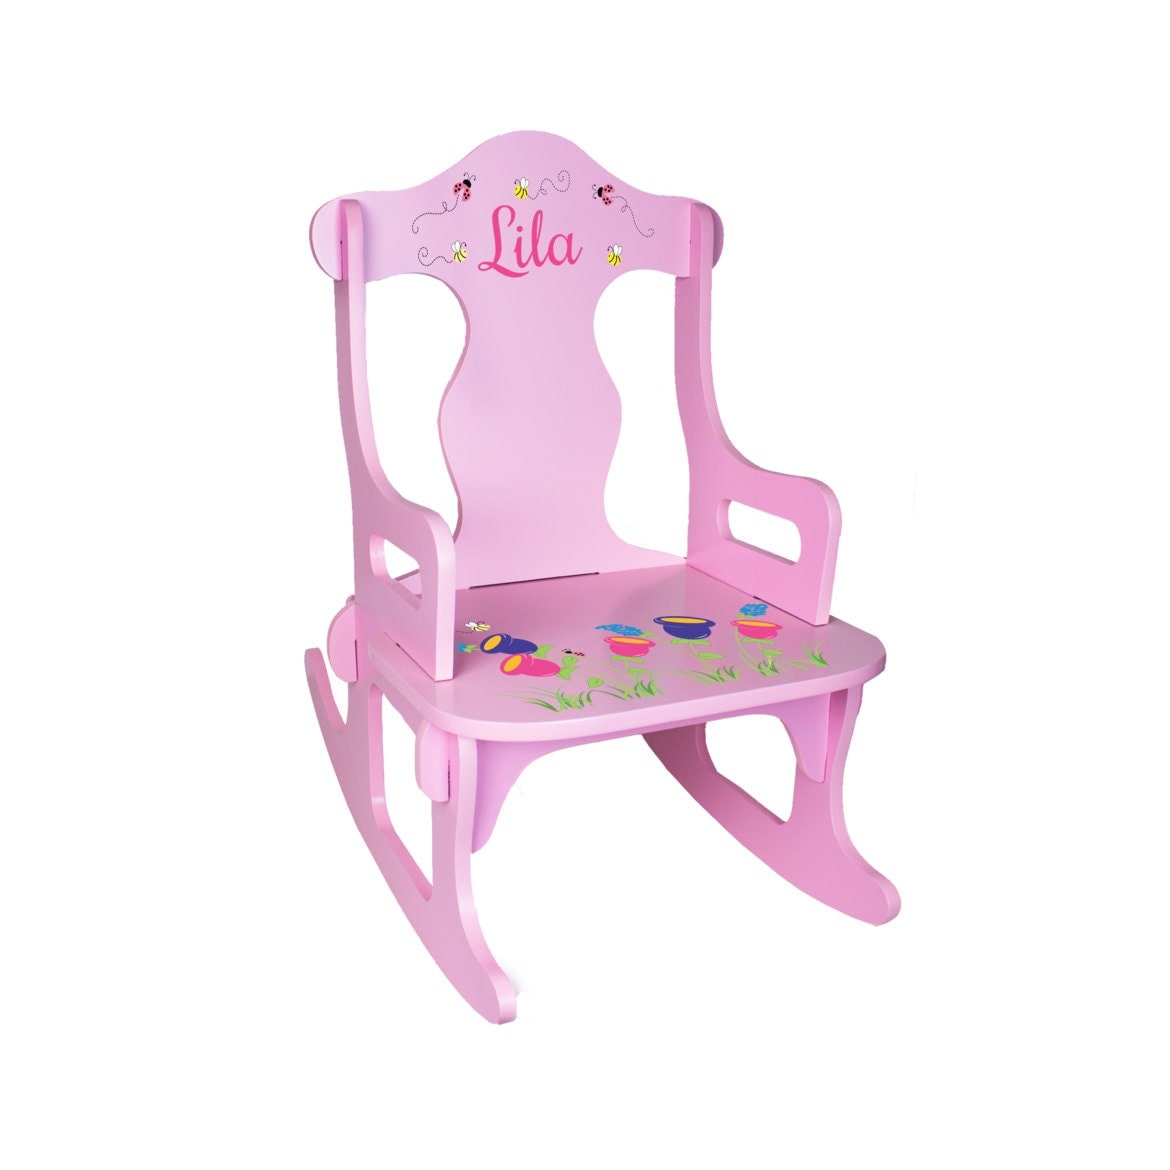 ... Photos - Kids Rocking Chairs Personalized Gifts For Kids Personalized